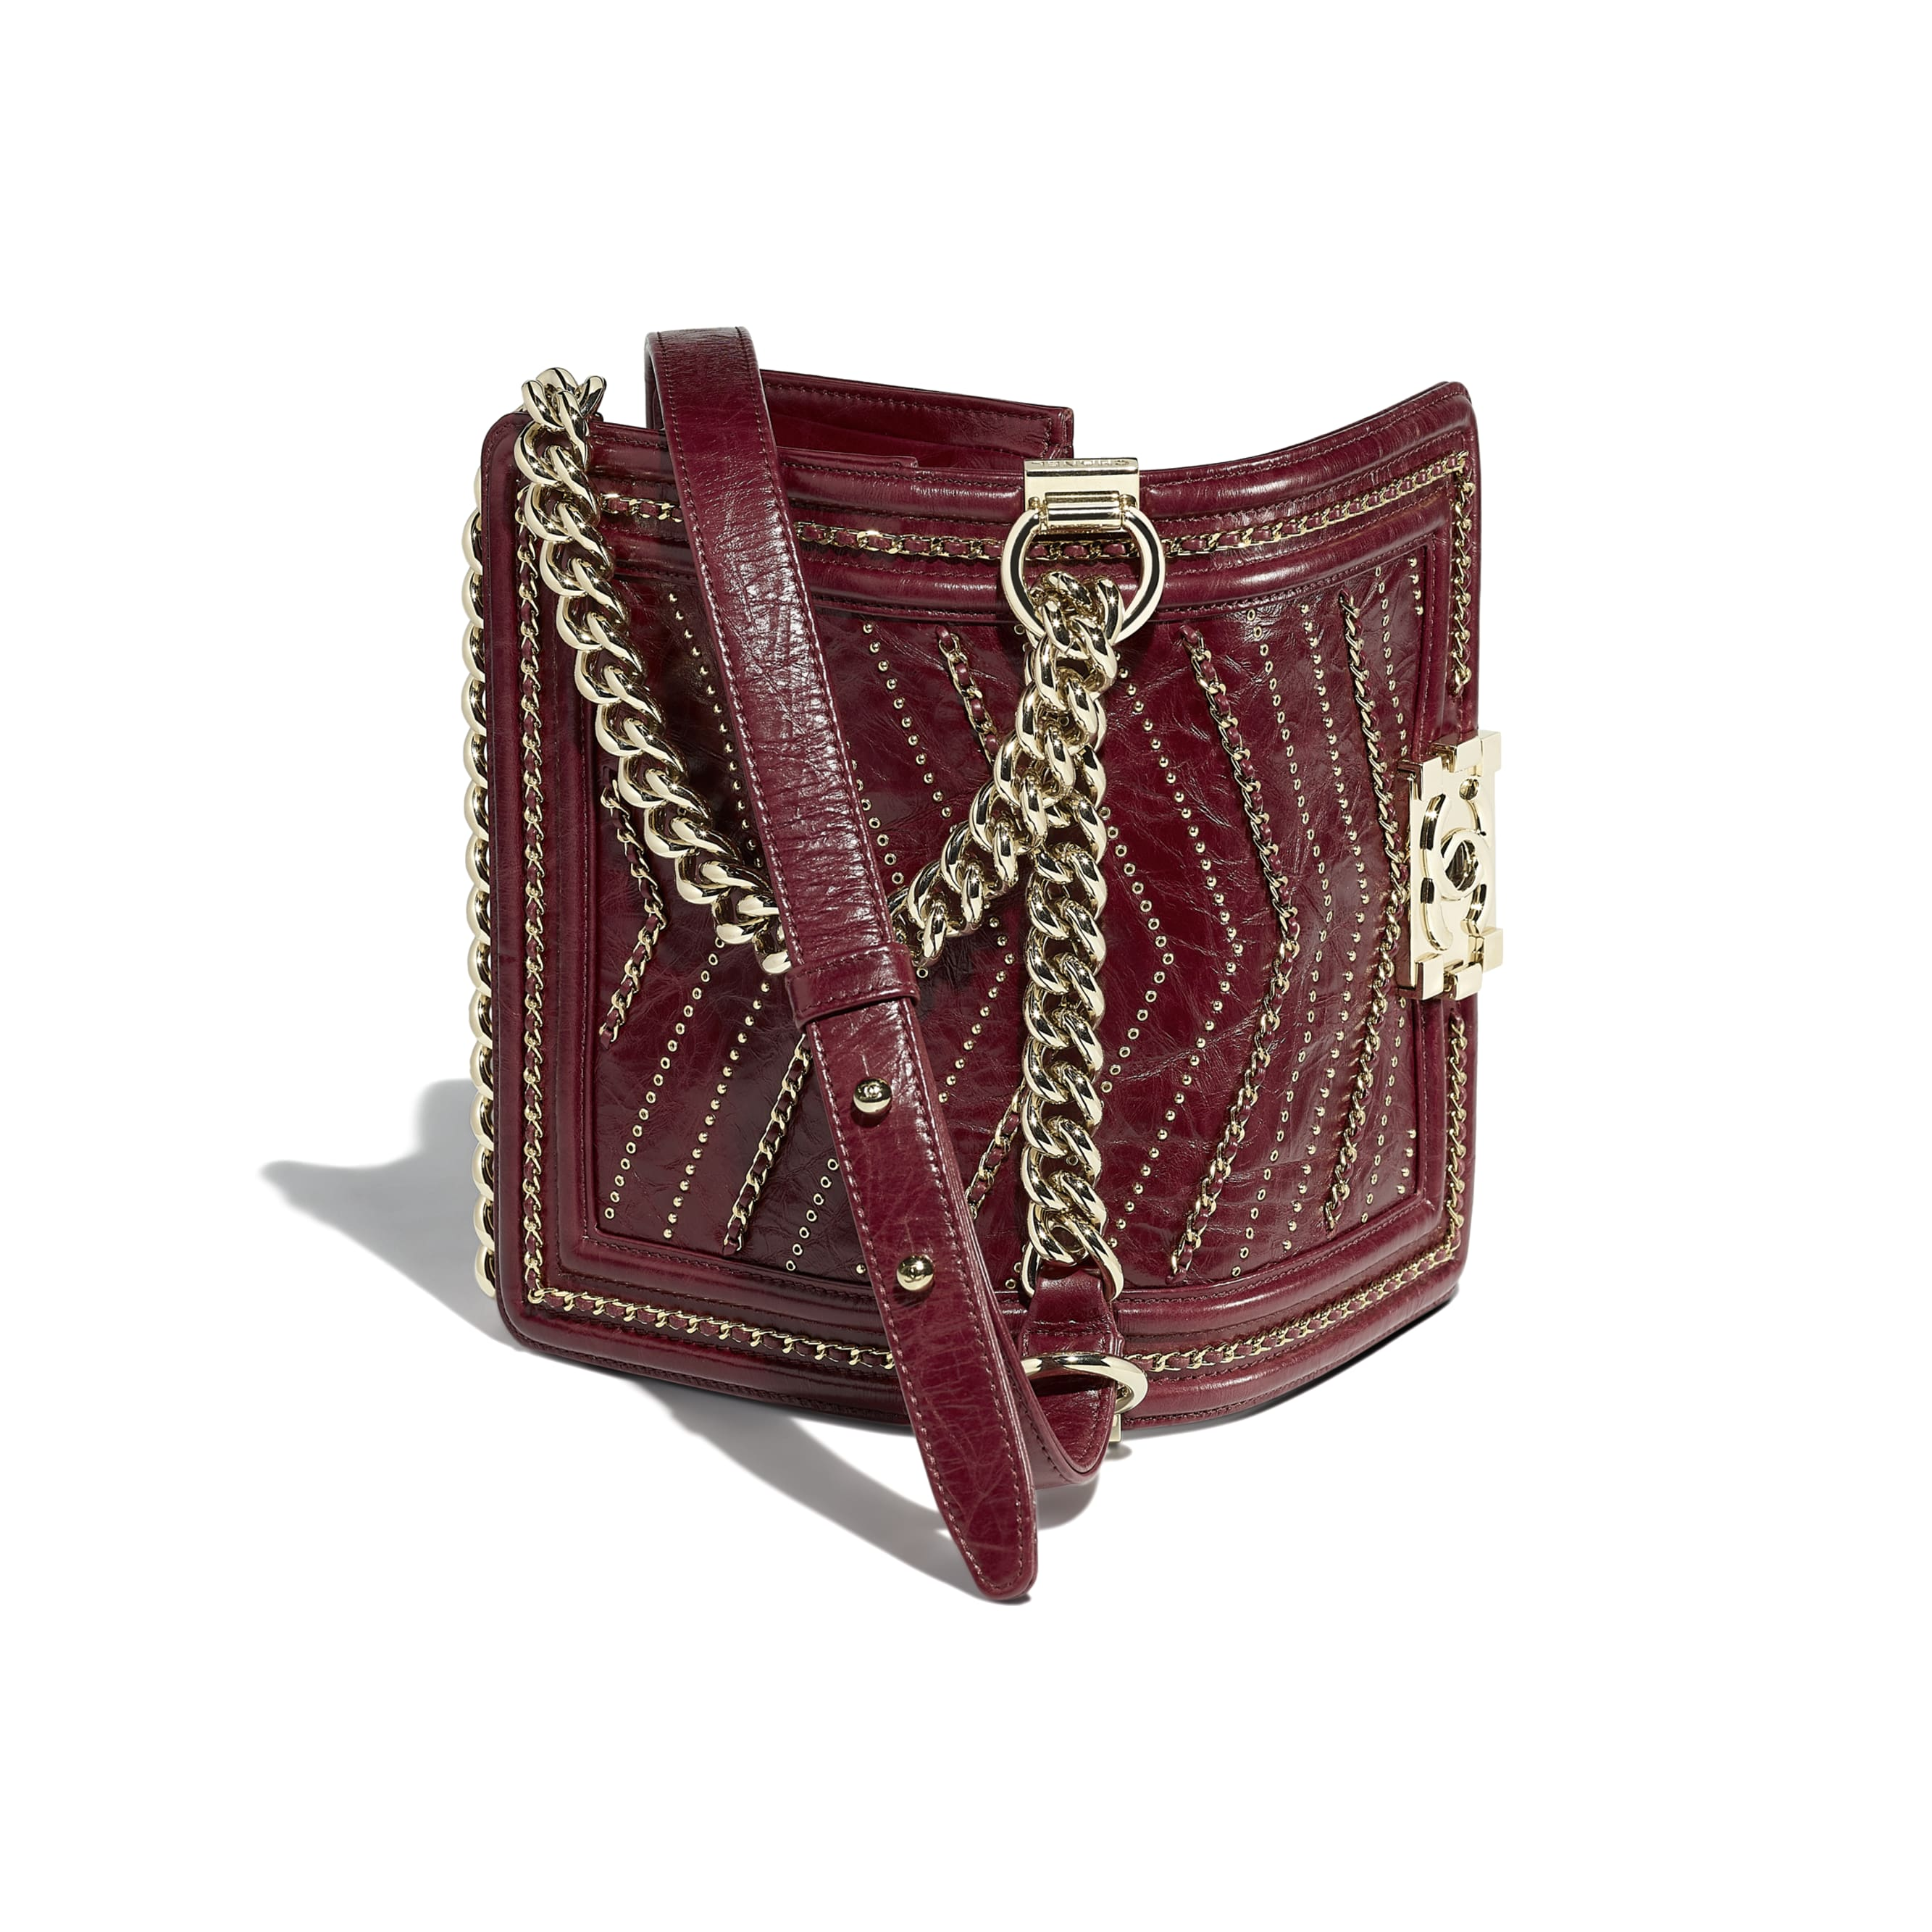 Small BOY CHANEL Handbag - Red - Crumpled Calfskin & Gold-Tone Metal - Other view - see standard sized version